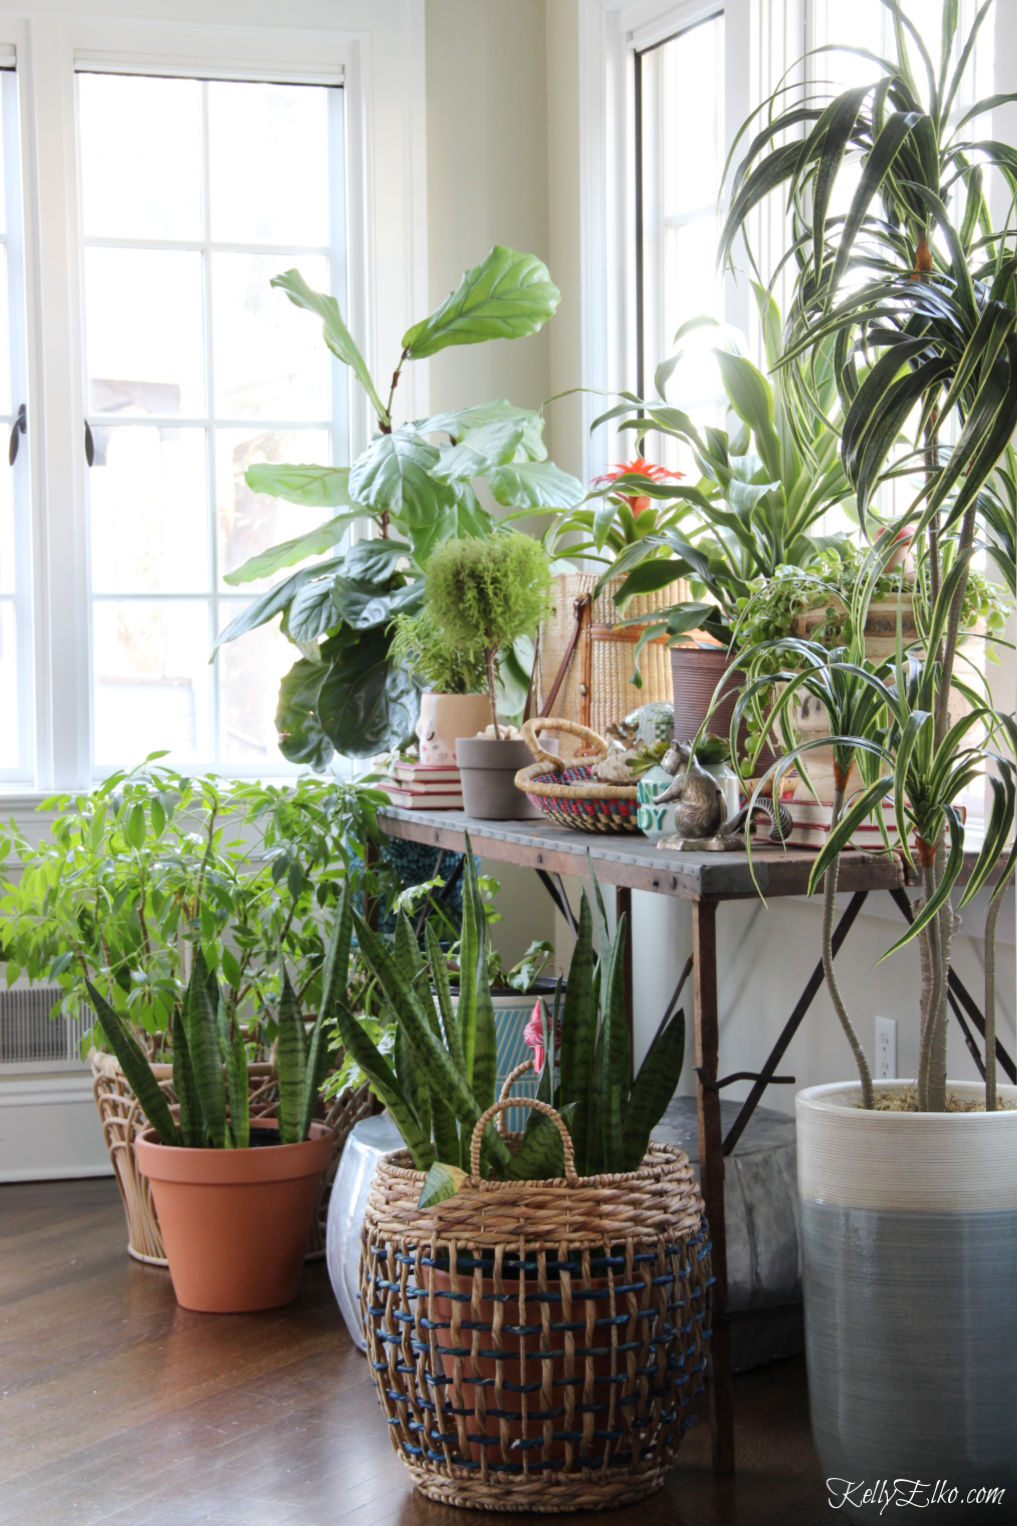 Beautiful sunroom filled with a variety of sun loving plants kellyelko.com #plants #houseplants #sunroom #jungalow #jungalowstyle #bohostyle #bohodecor #interiordesign #planters #vintagedecor #plantlady #eclecticdecor #kellyelko